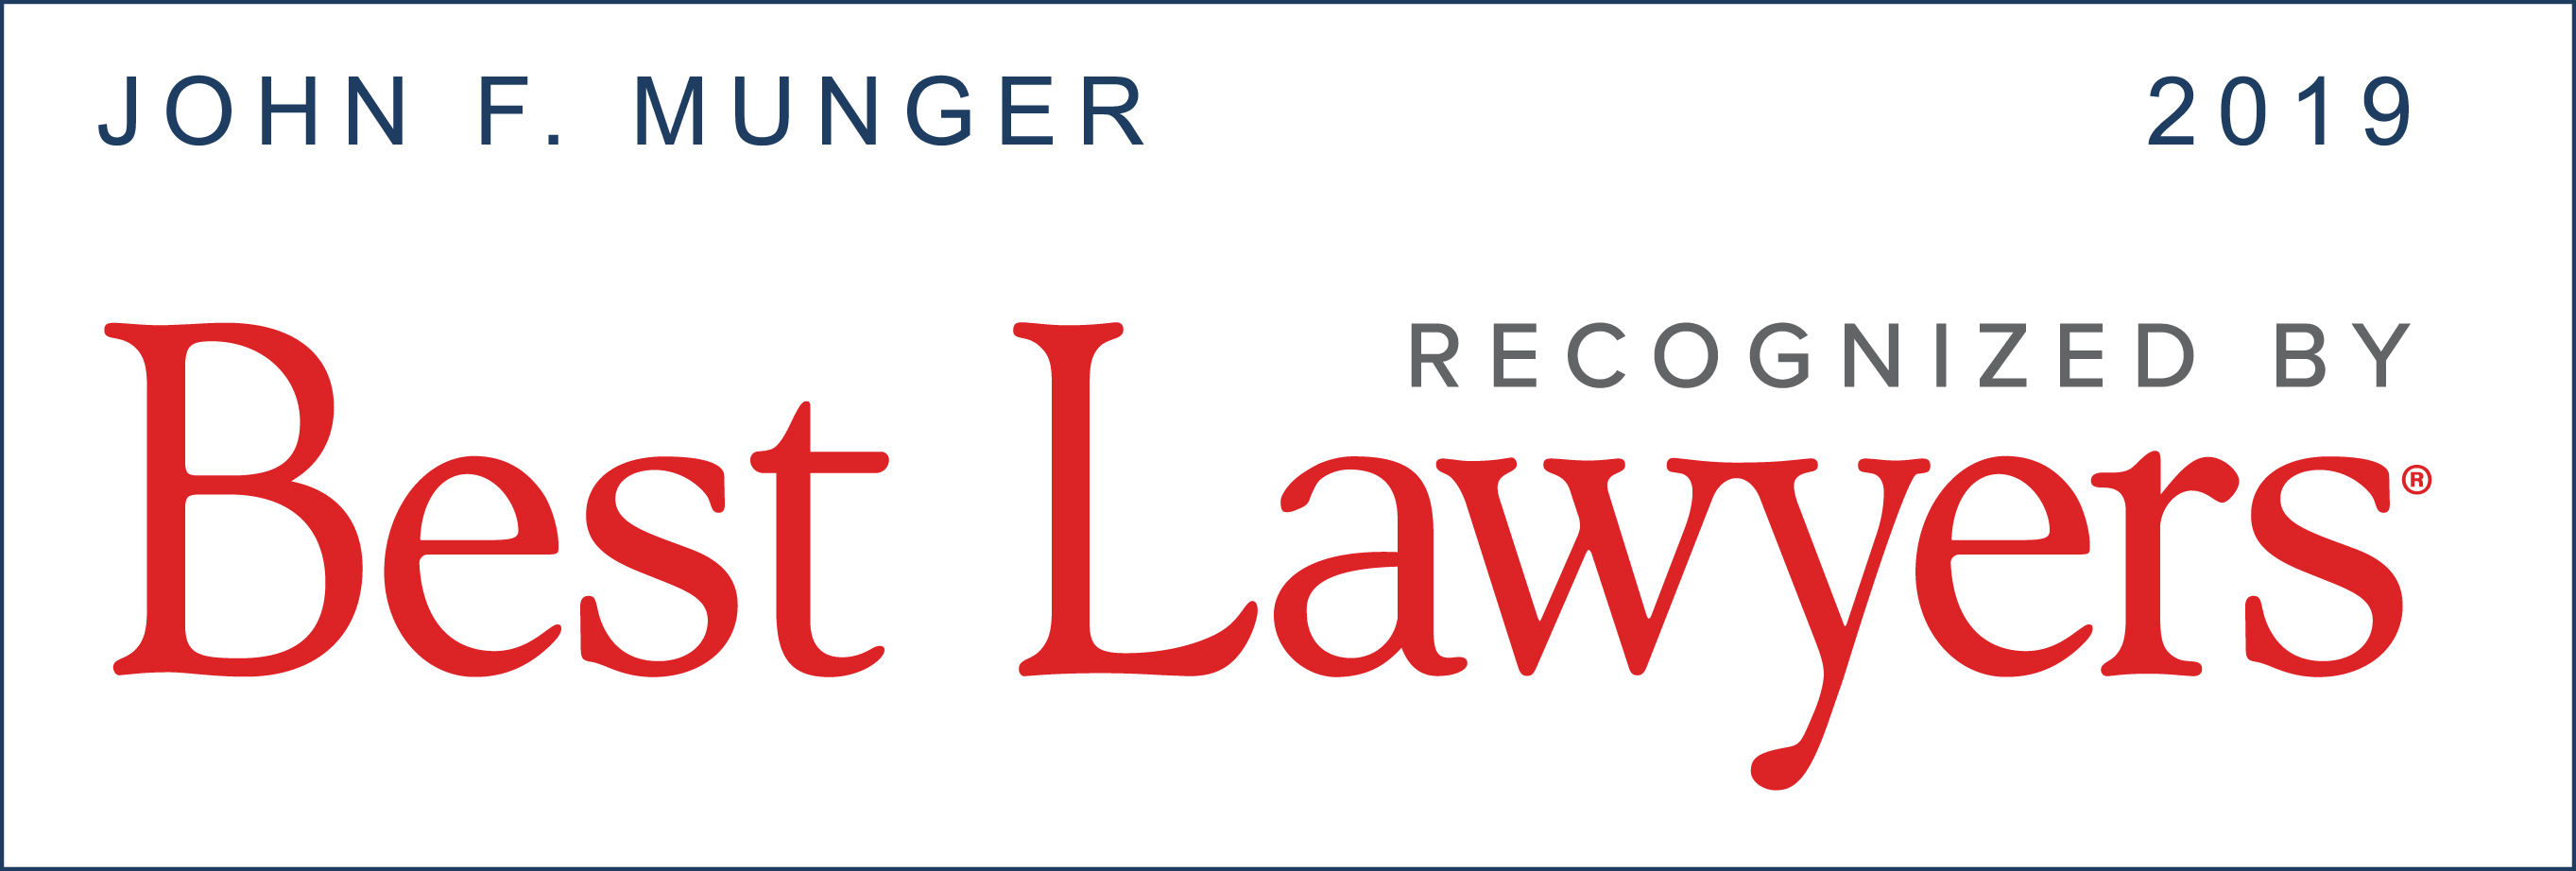 John F. Munger is recognized by Best Lawyers 2019